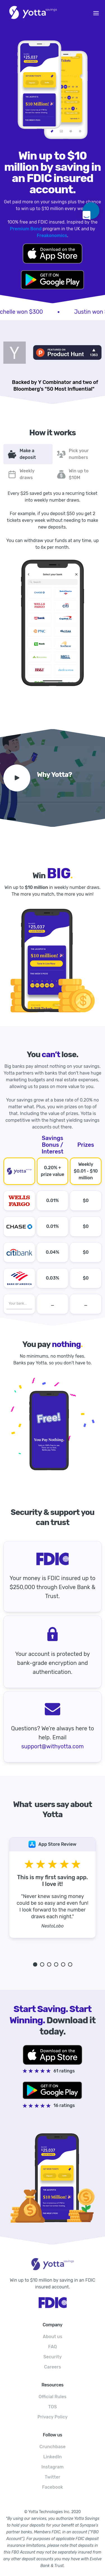 Example of Design for Finance, Banking, Mobile Landing Page by withyotta.com | Mobile Landing Page Design